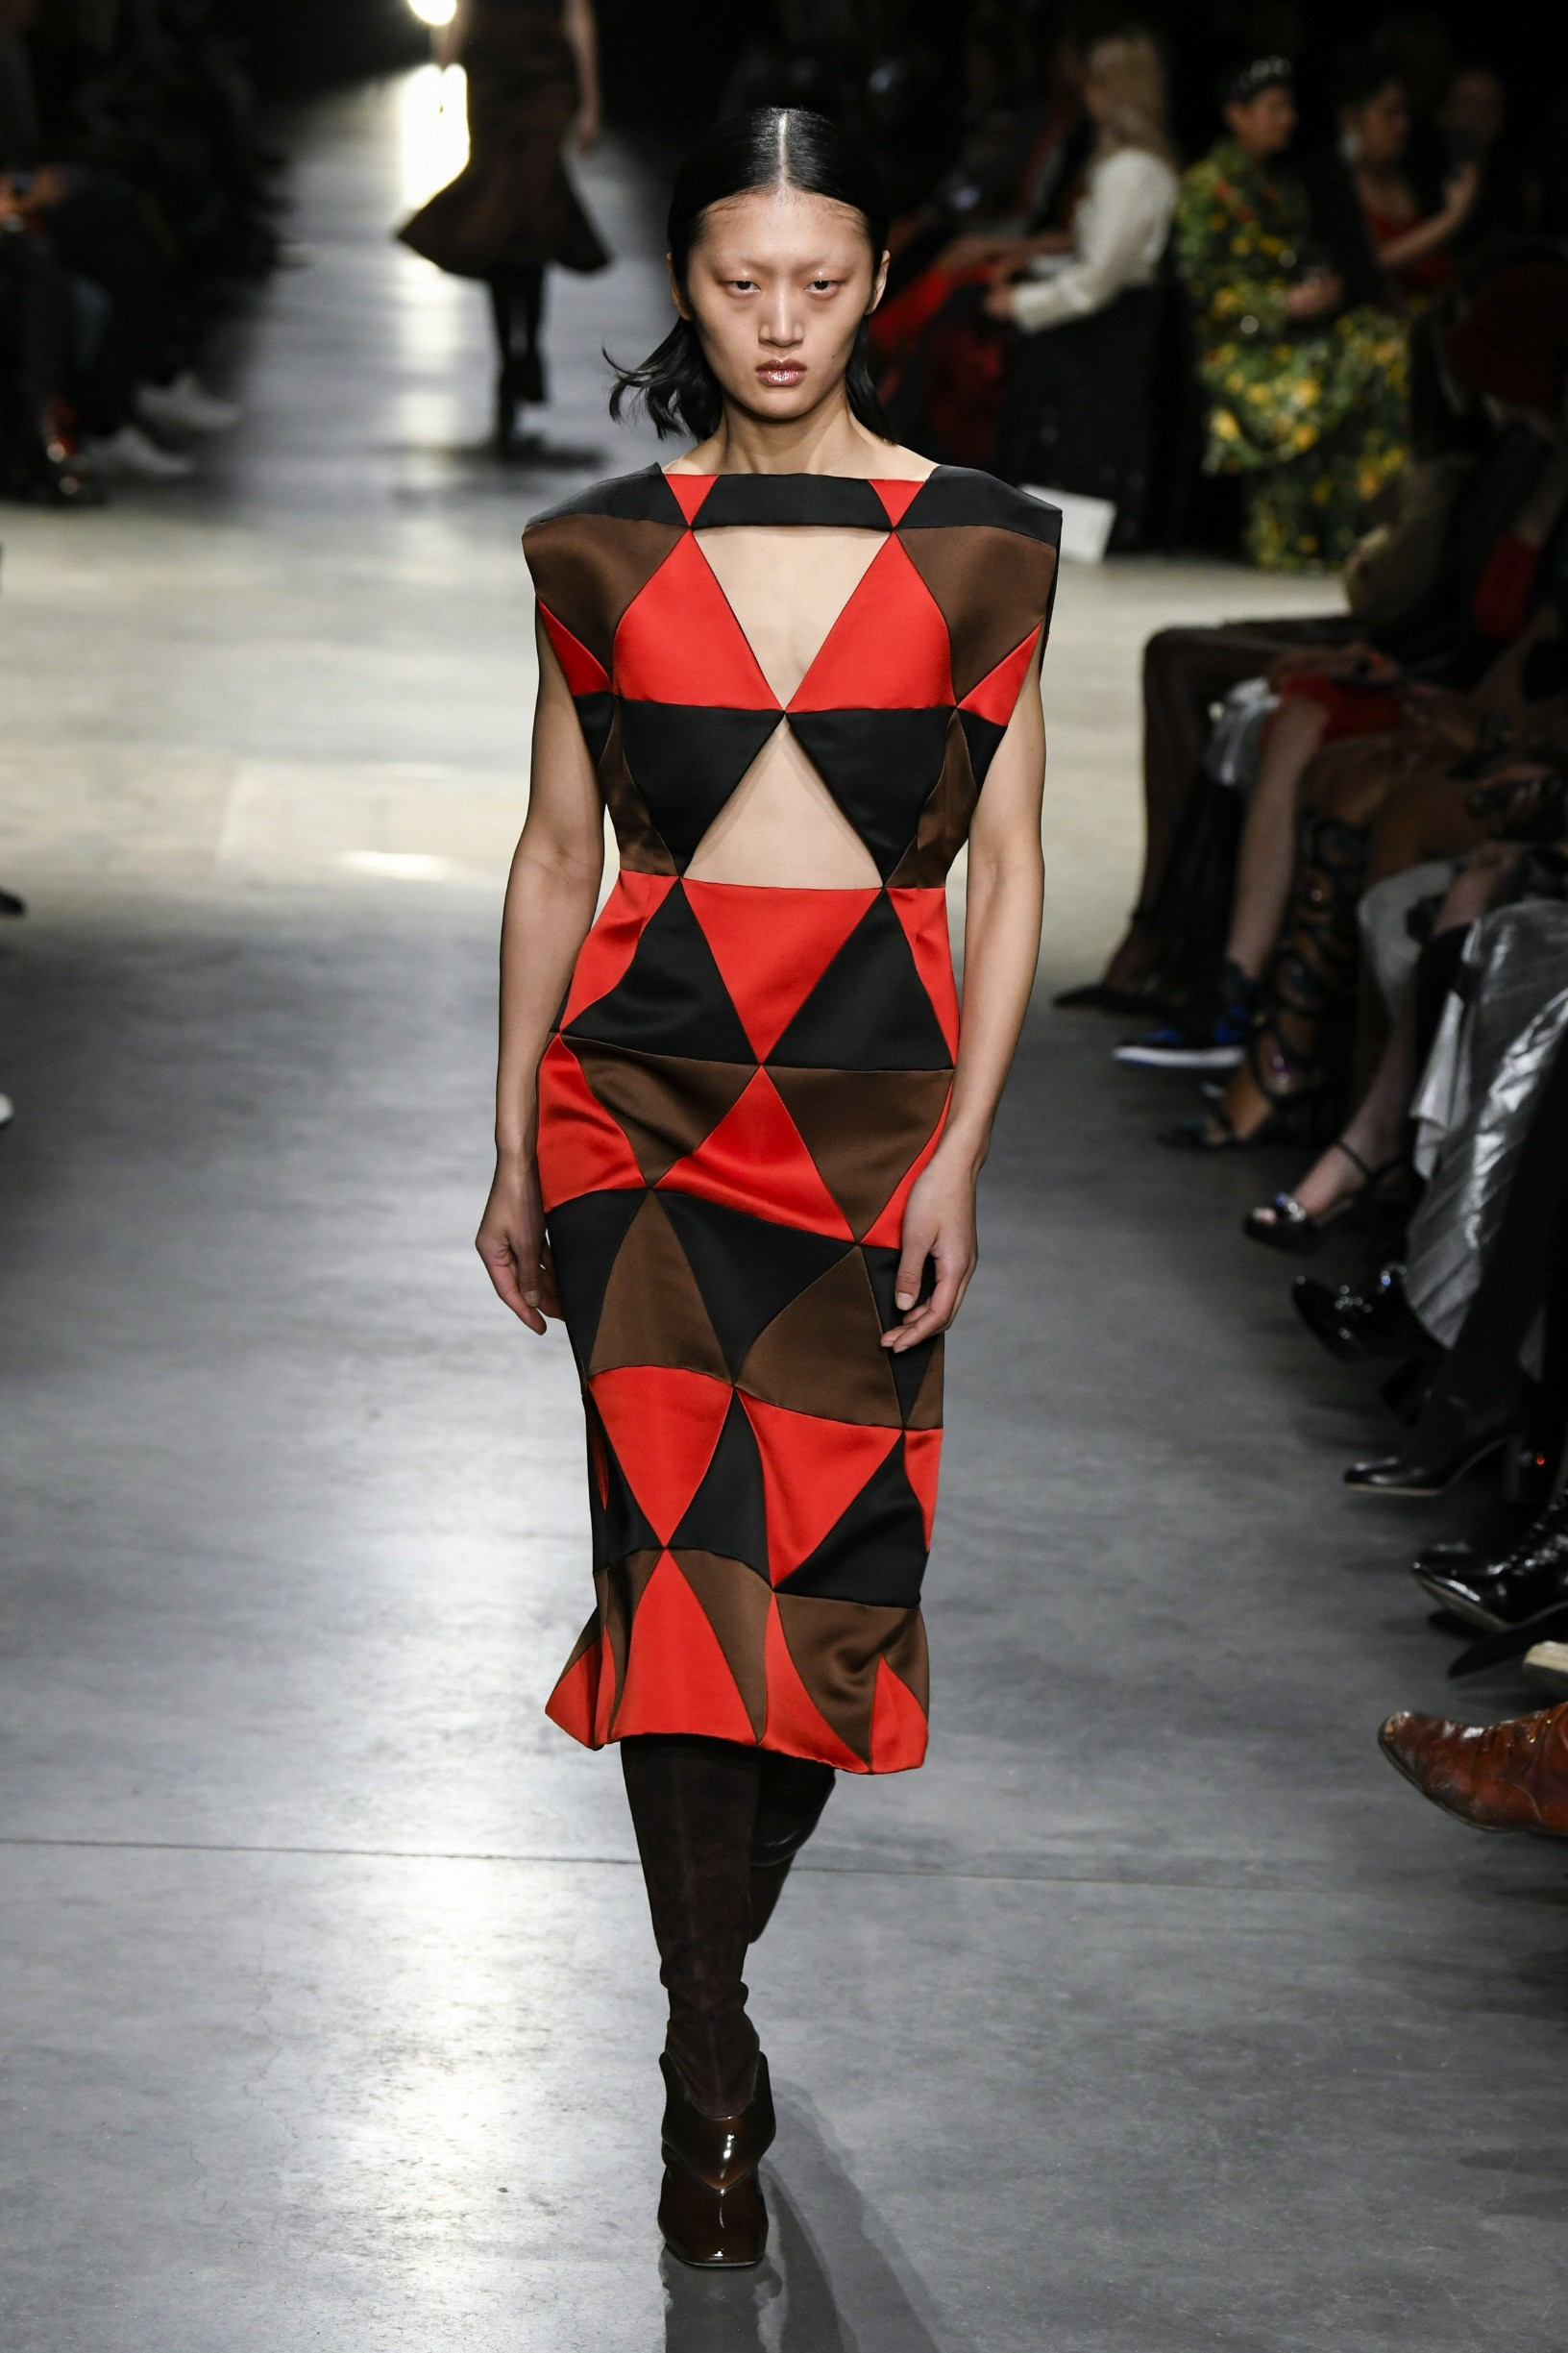 Model wears an outfit as part of the women ready-to-wear autumn winter 2020 2021, women fashion week, London, UK, from the house of Christopher Kane  //Z-PIXEL-FORMULA_A_009/2002182350/Credit:PIXELFORMULA/SIPA/2002182359, Image: 499410274, License: Rights-managed, Restrictions: , Model Release: no, Credit line: PIXELFORMULA / Sipa Press / Profimedia